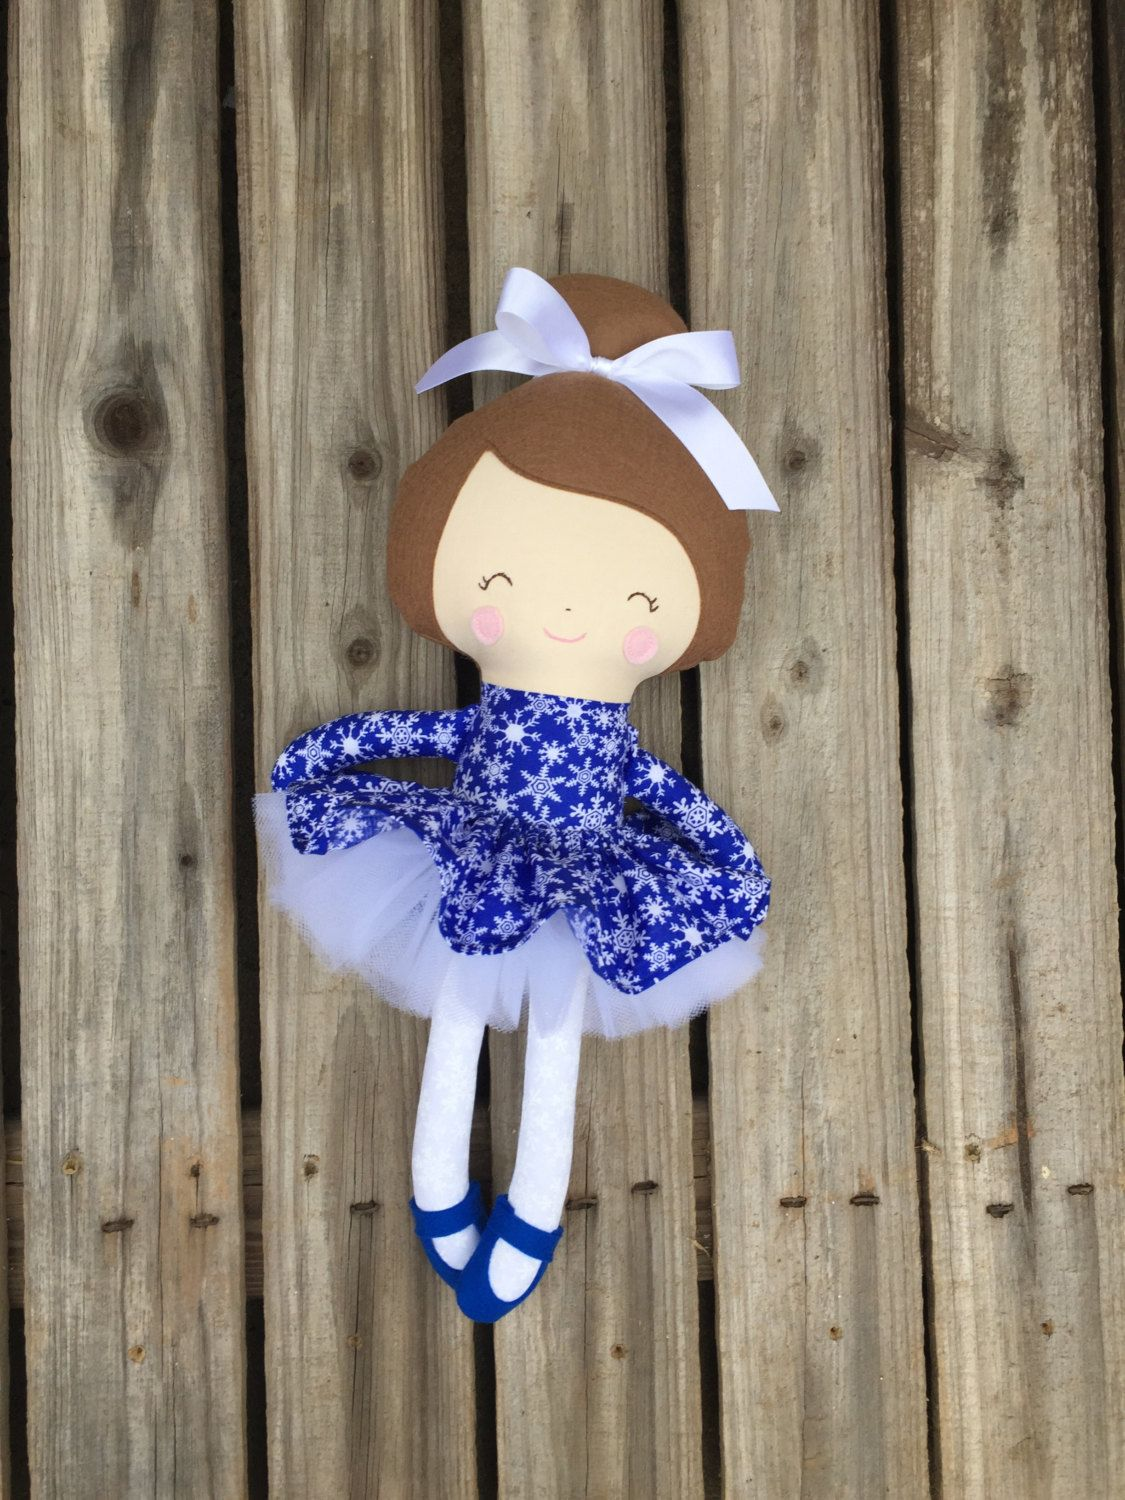 Christmas plush doll, ballerina doll with snowflakes by CuddlesandCuties on Etsy